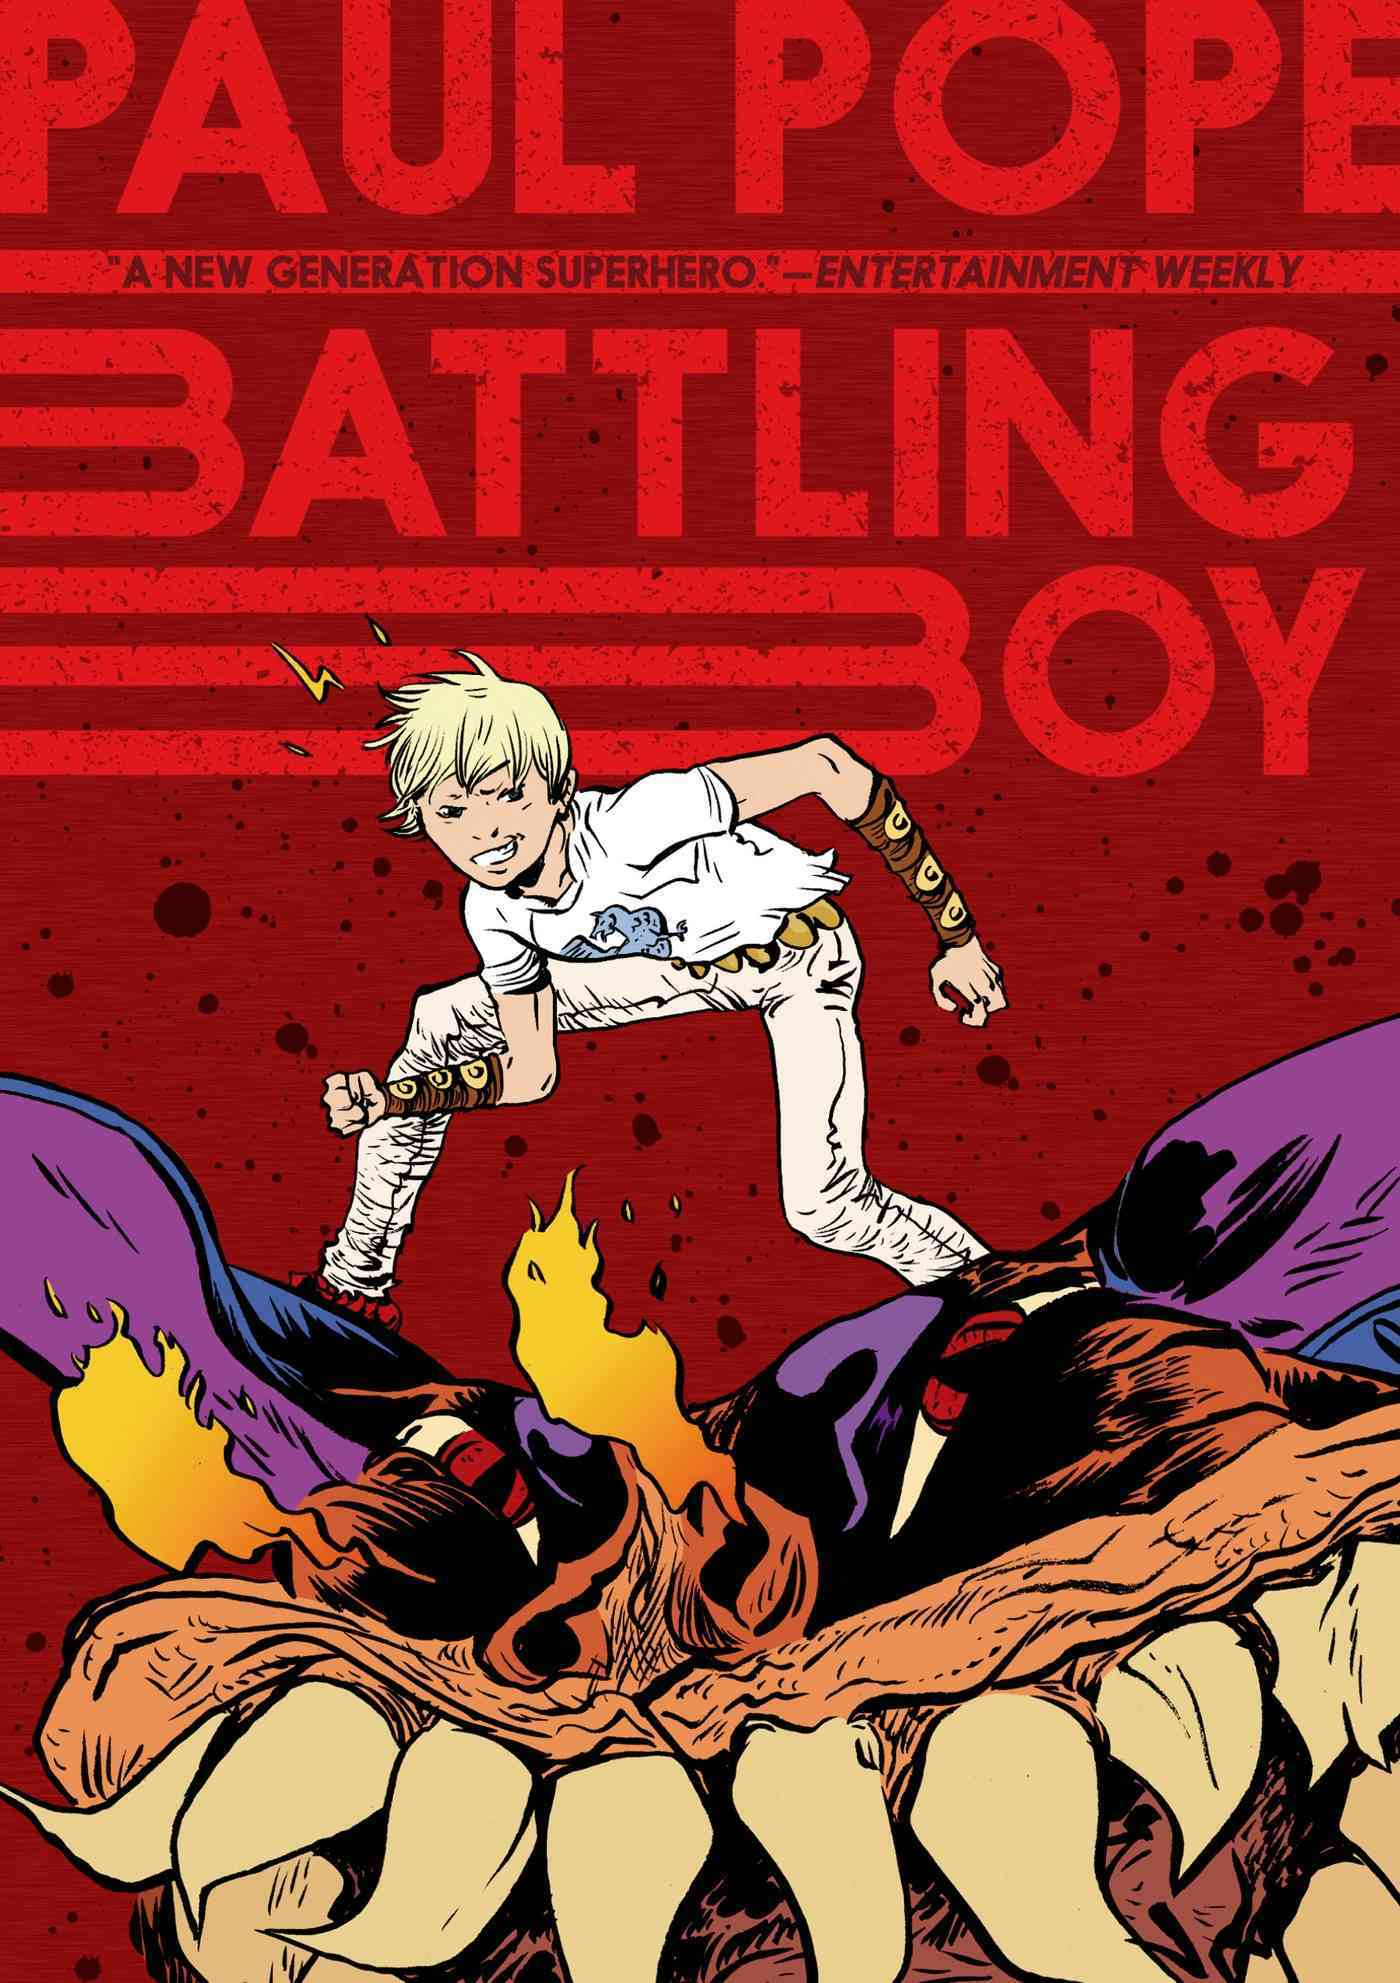 Battling Boy By Pope, Paul